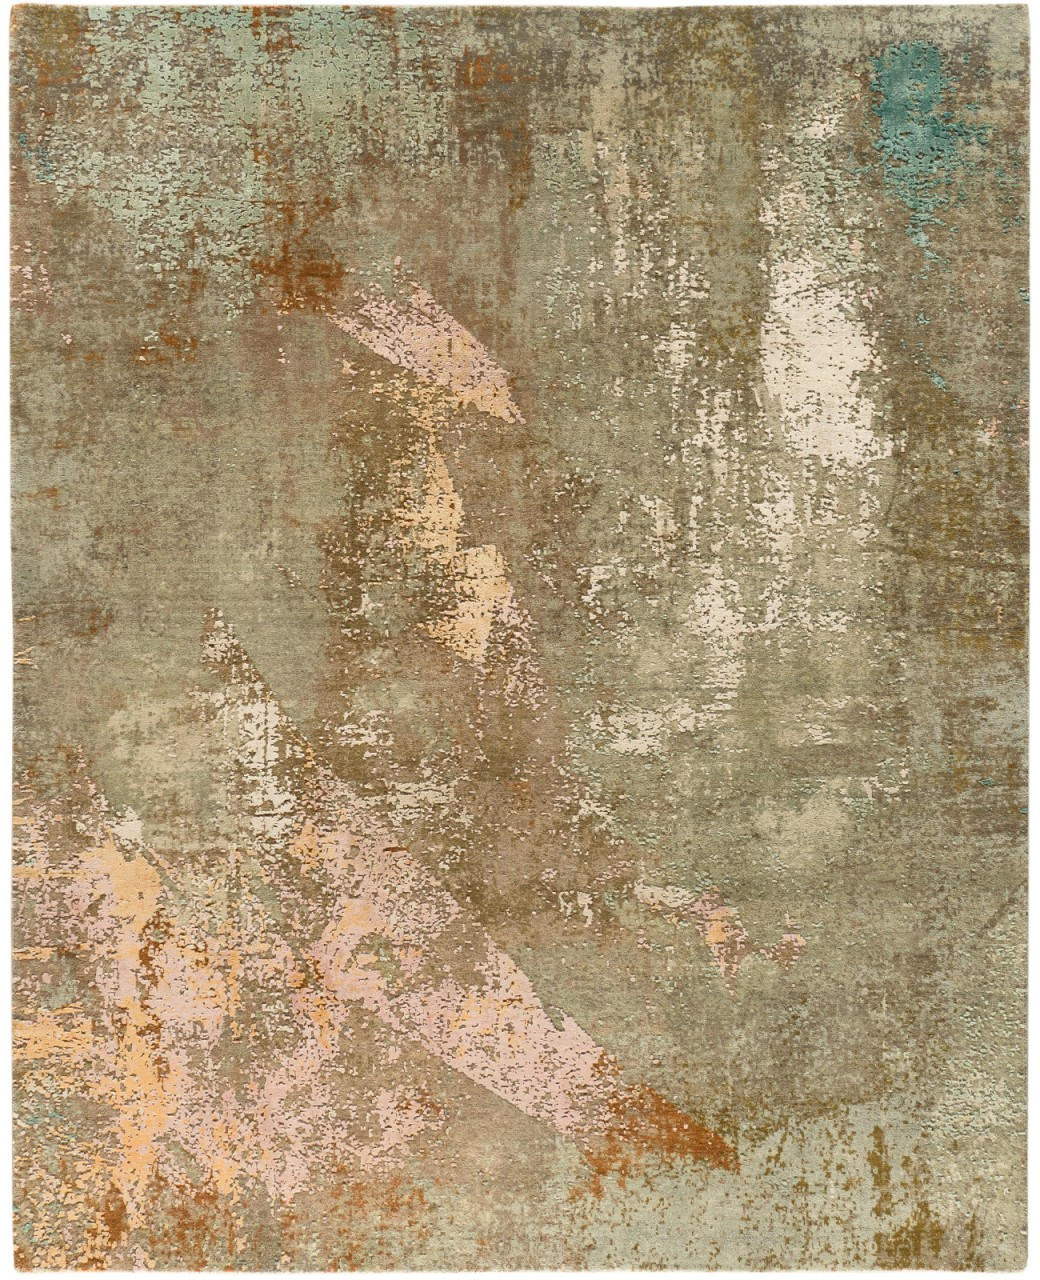 Design-Teppich Abstract Paradise